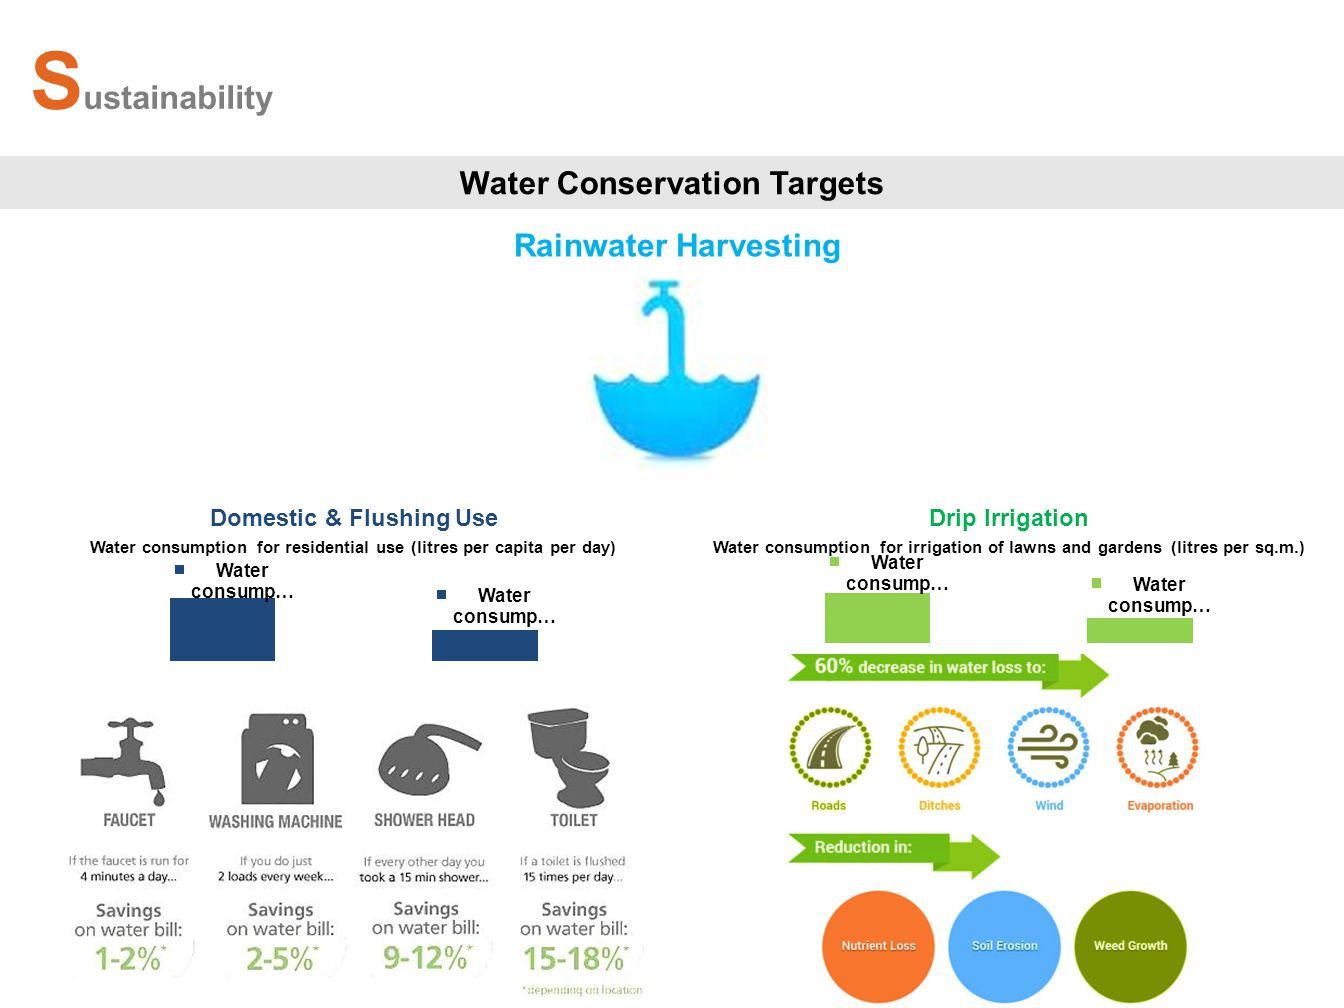 S ustainability Water Conservation Targets Water consumption for residential use (litres per capita per day) Domestic & Flushing UseDrip Irrigation Water consumption for irrigation of lawns and gardens (litres per sq.m.) Rainwater Harvesting